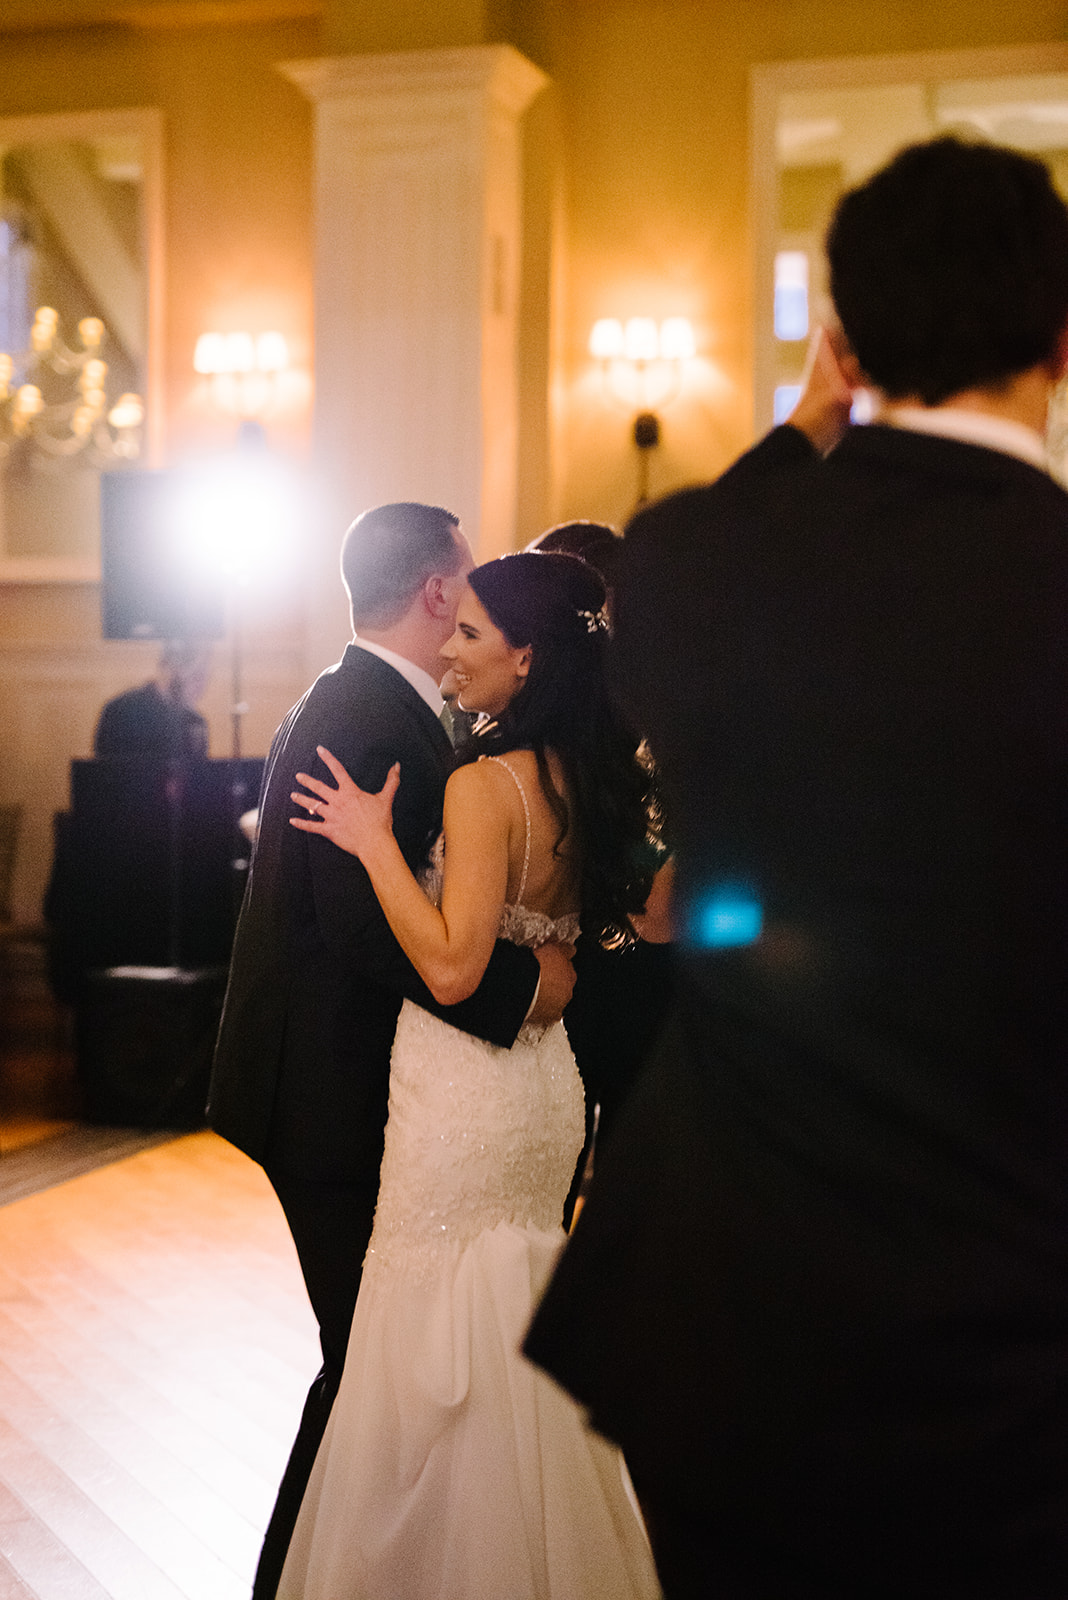 The Ryland Inn-Lauren + Chris- Wedding Highlights- New Jersey- Olivia Christina Photo-49.jpg